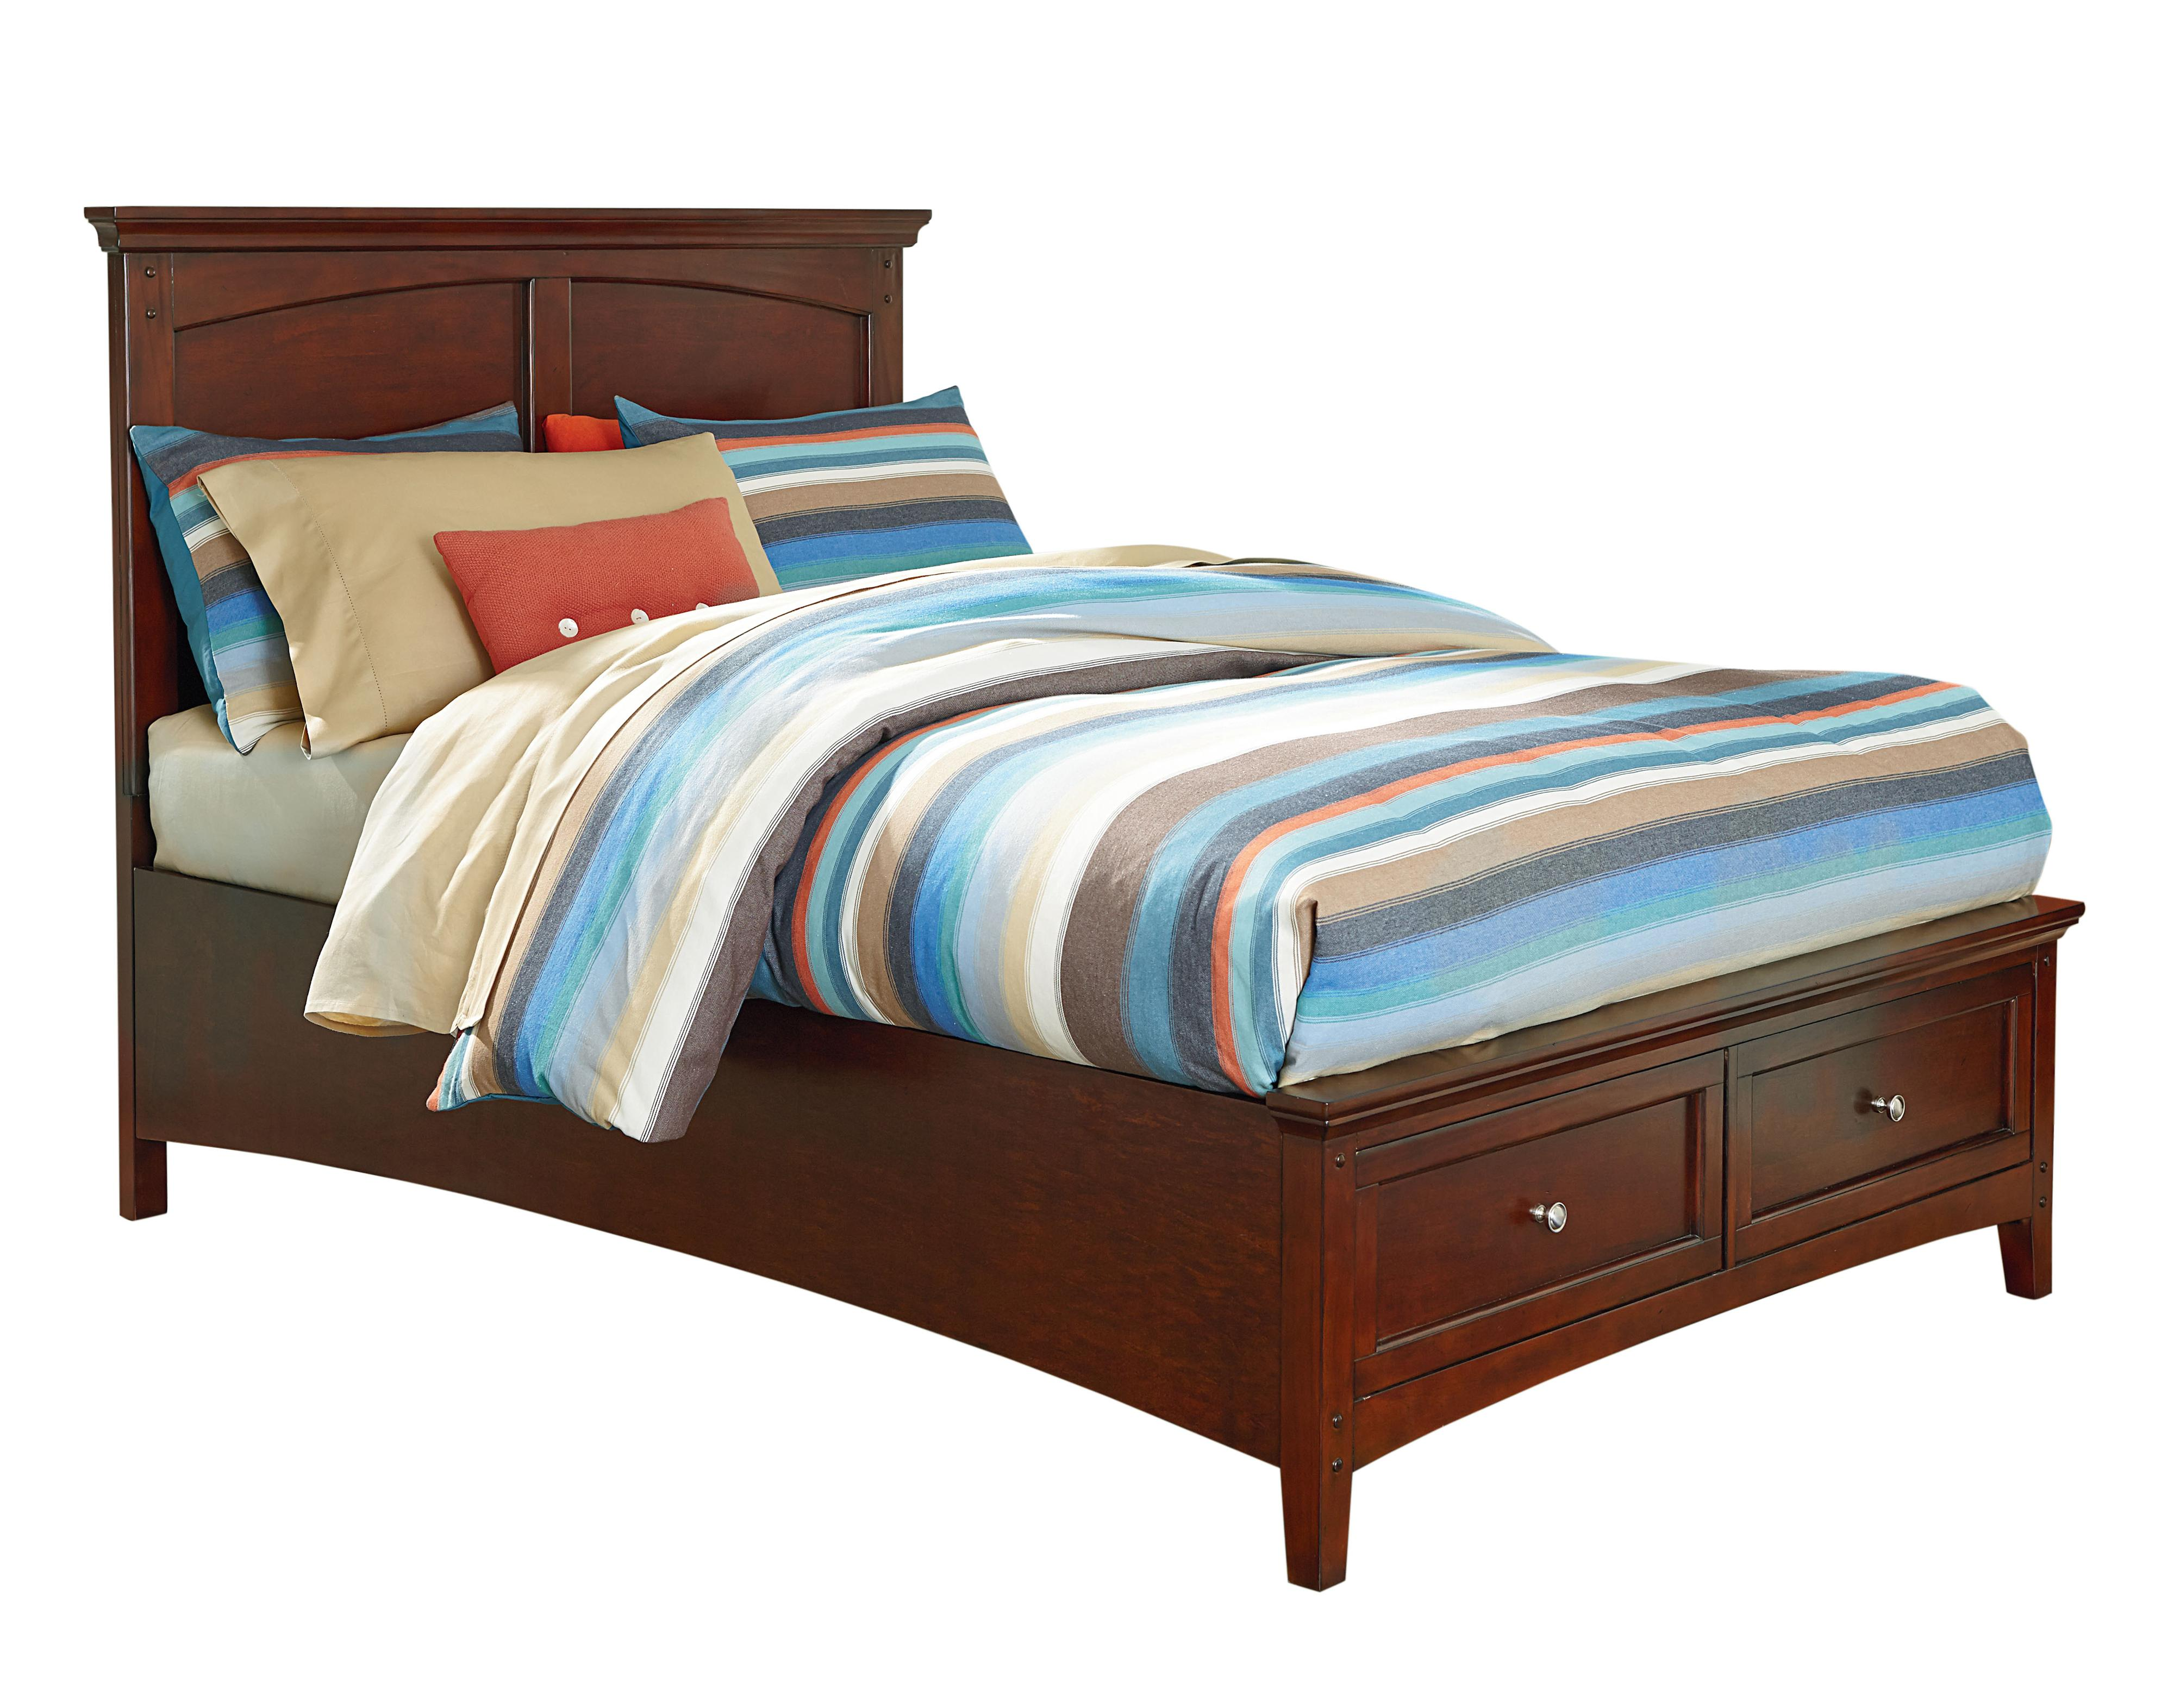 Cooperstown Casual Twin Bed With Storage Footboard By Standard Furniture Wolf Furniture